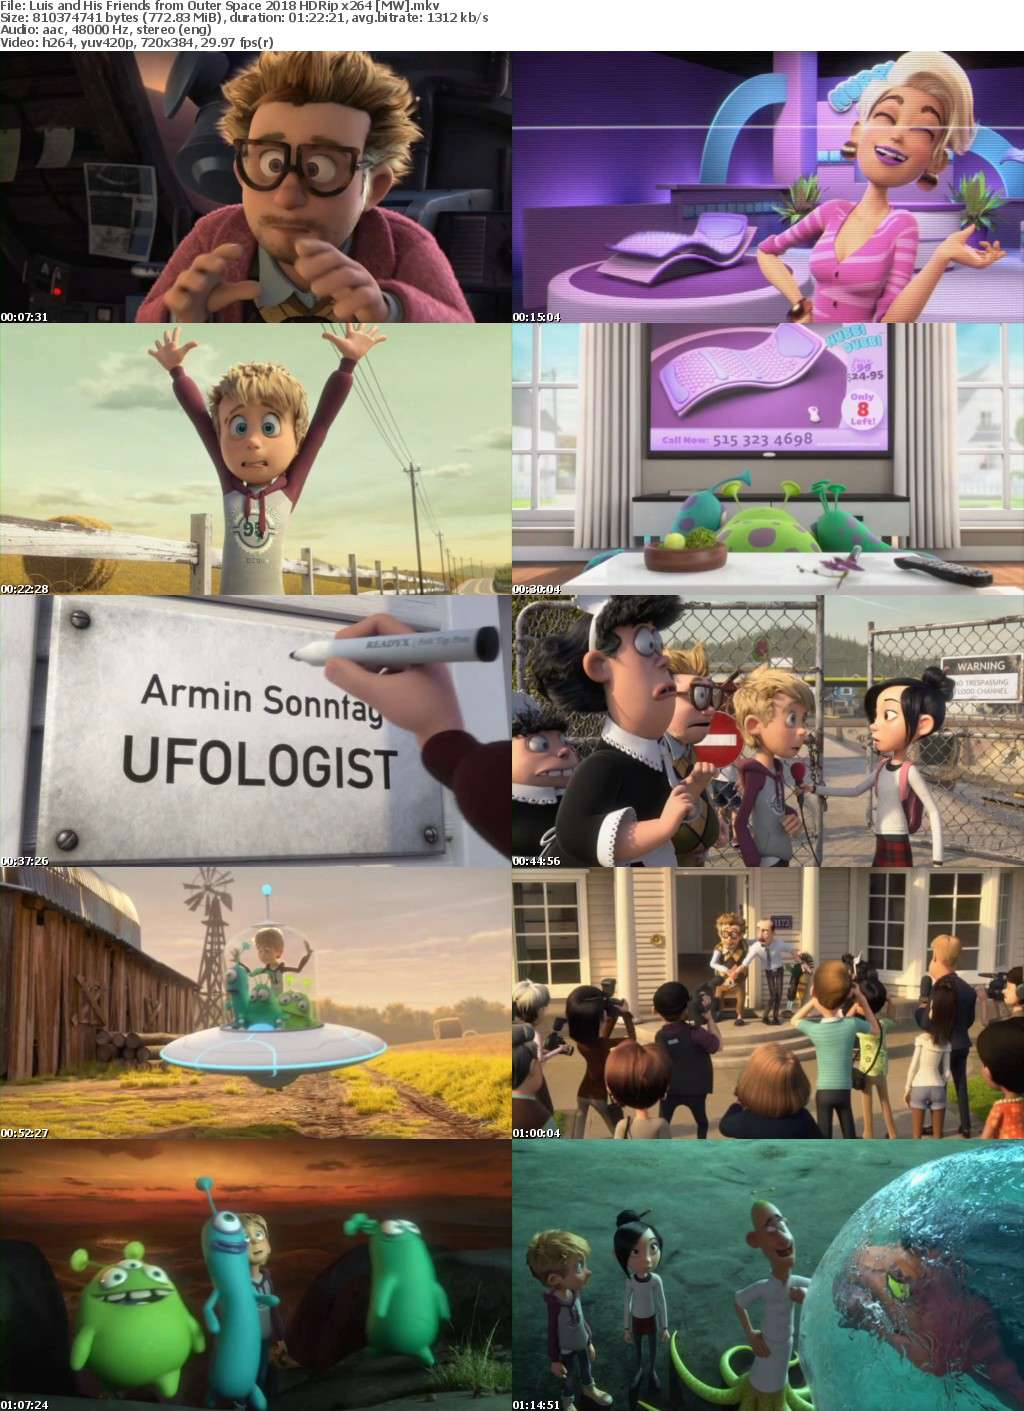 Luis and His Friends from Outer Space (2018) HDRip x264 MW